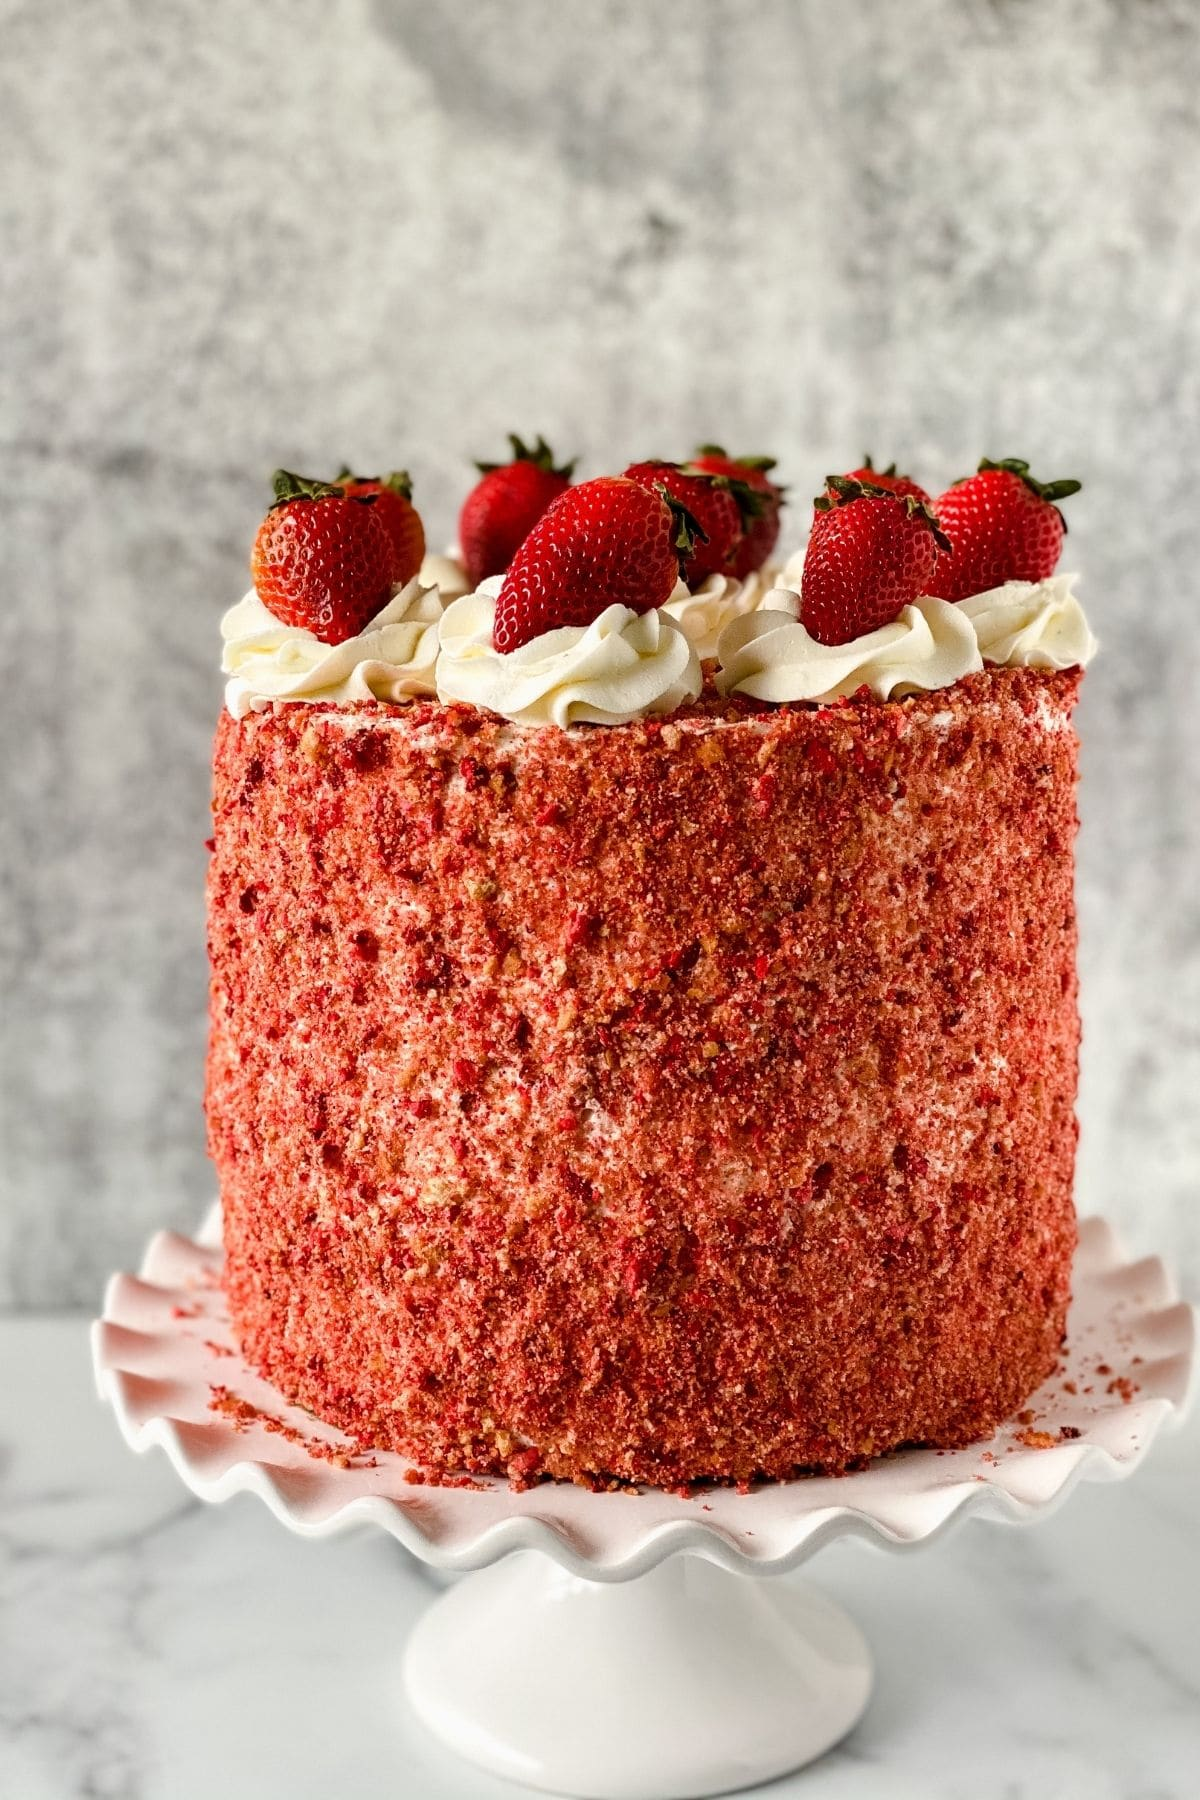 Pink cake with whipped cream and strawberry topping